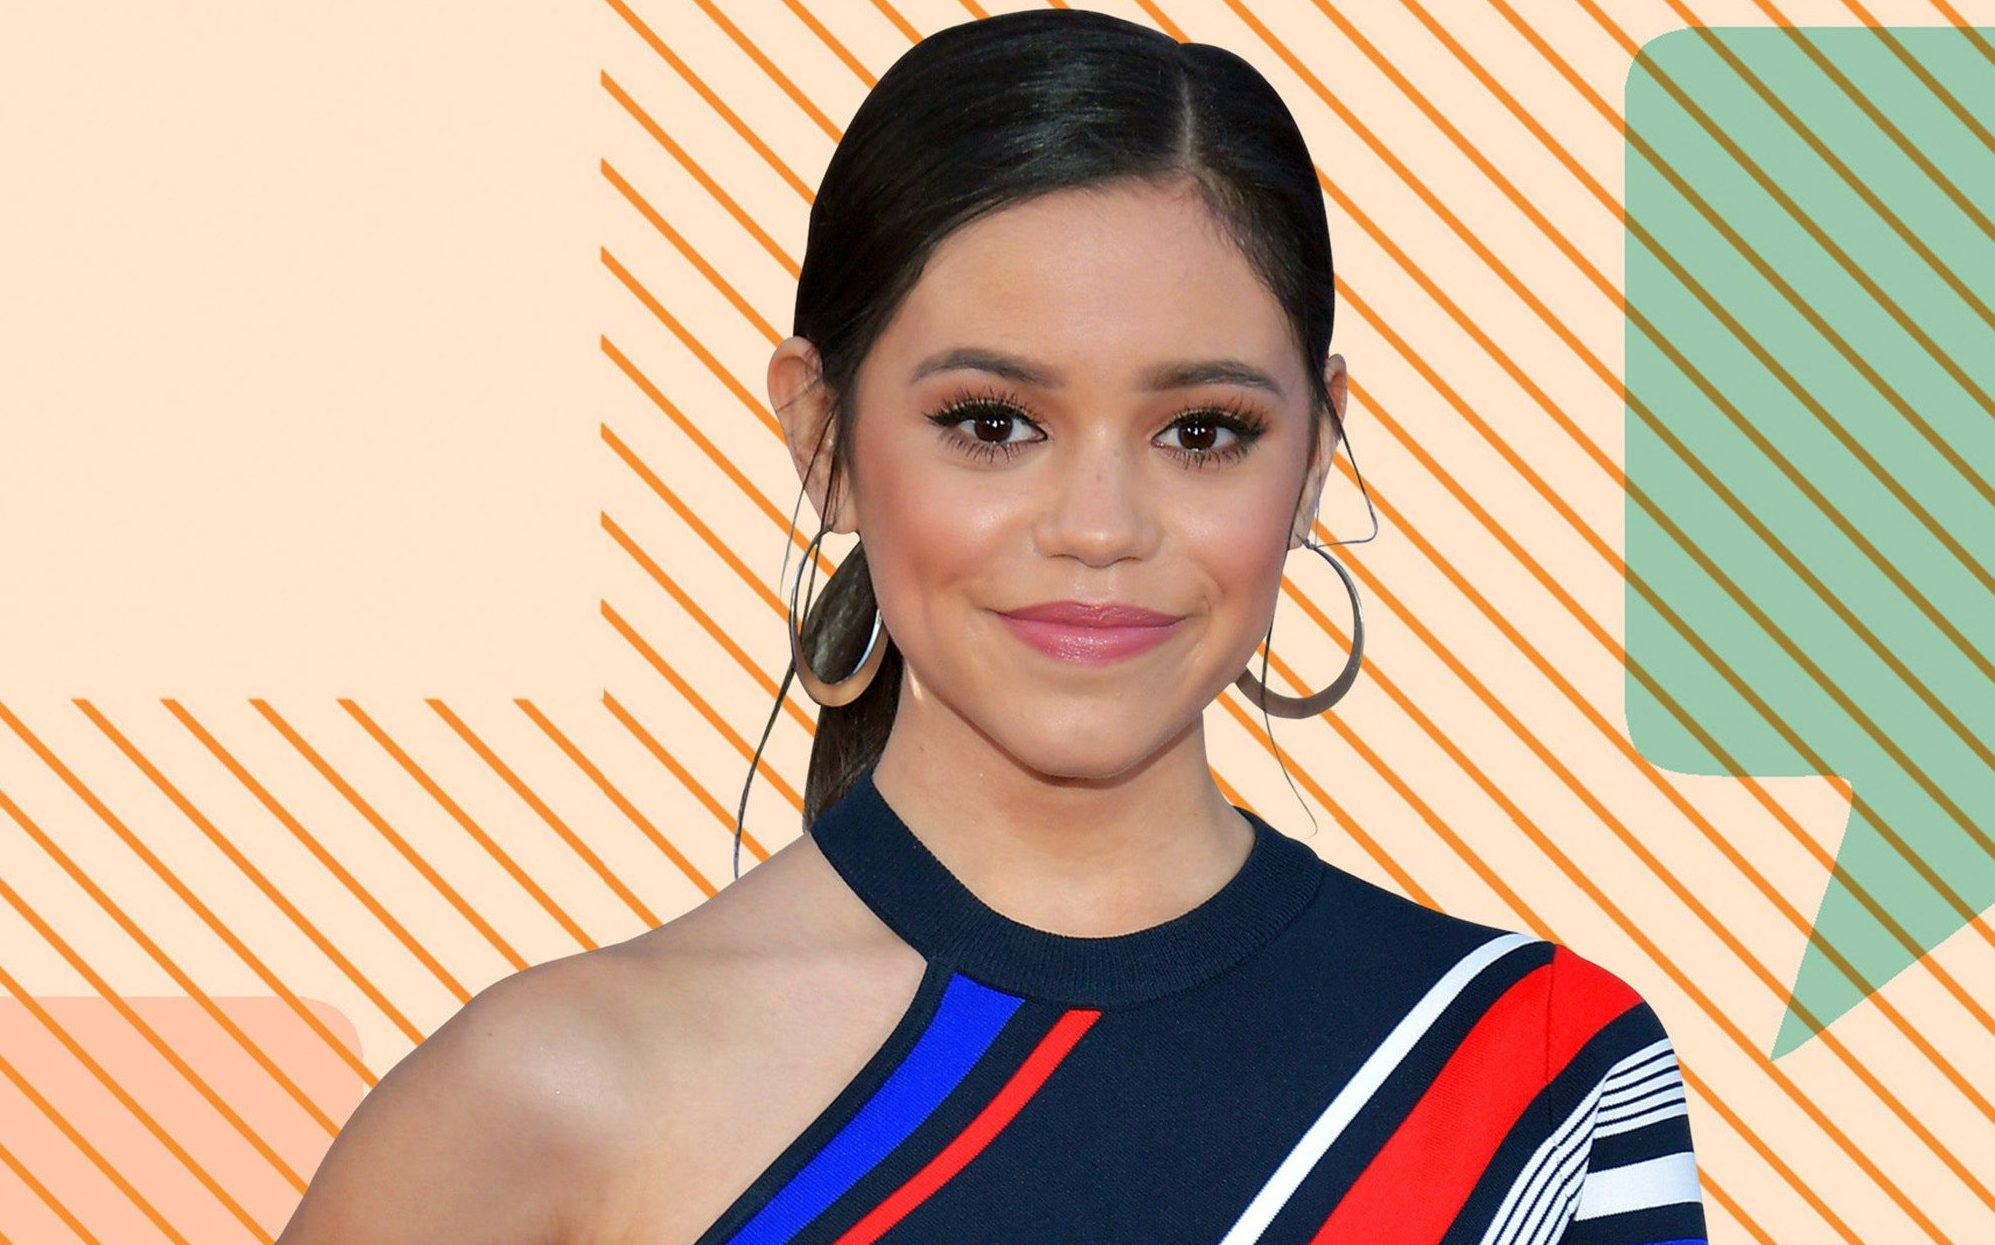 Who is Jenna Ortega Dating Now